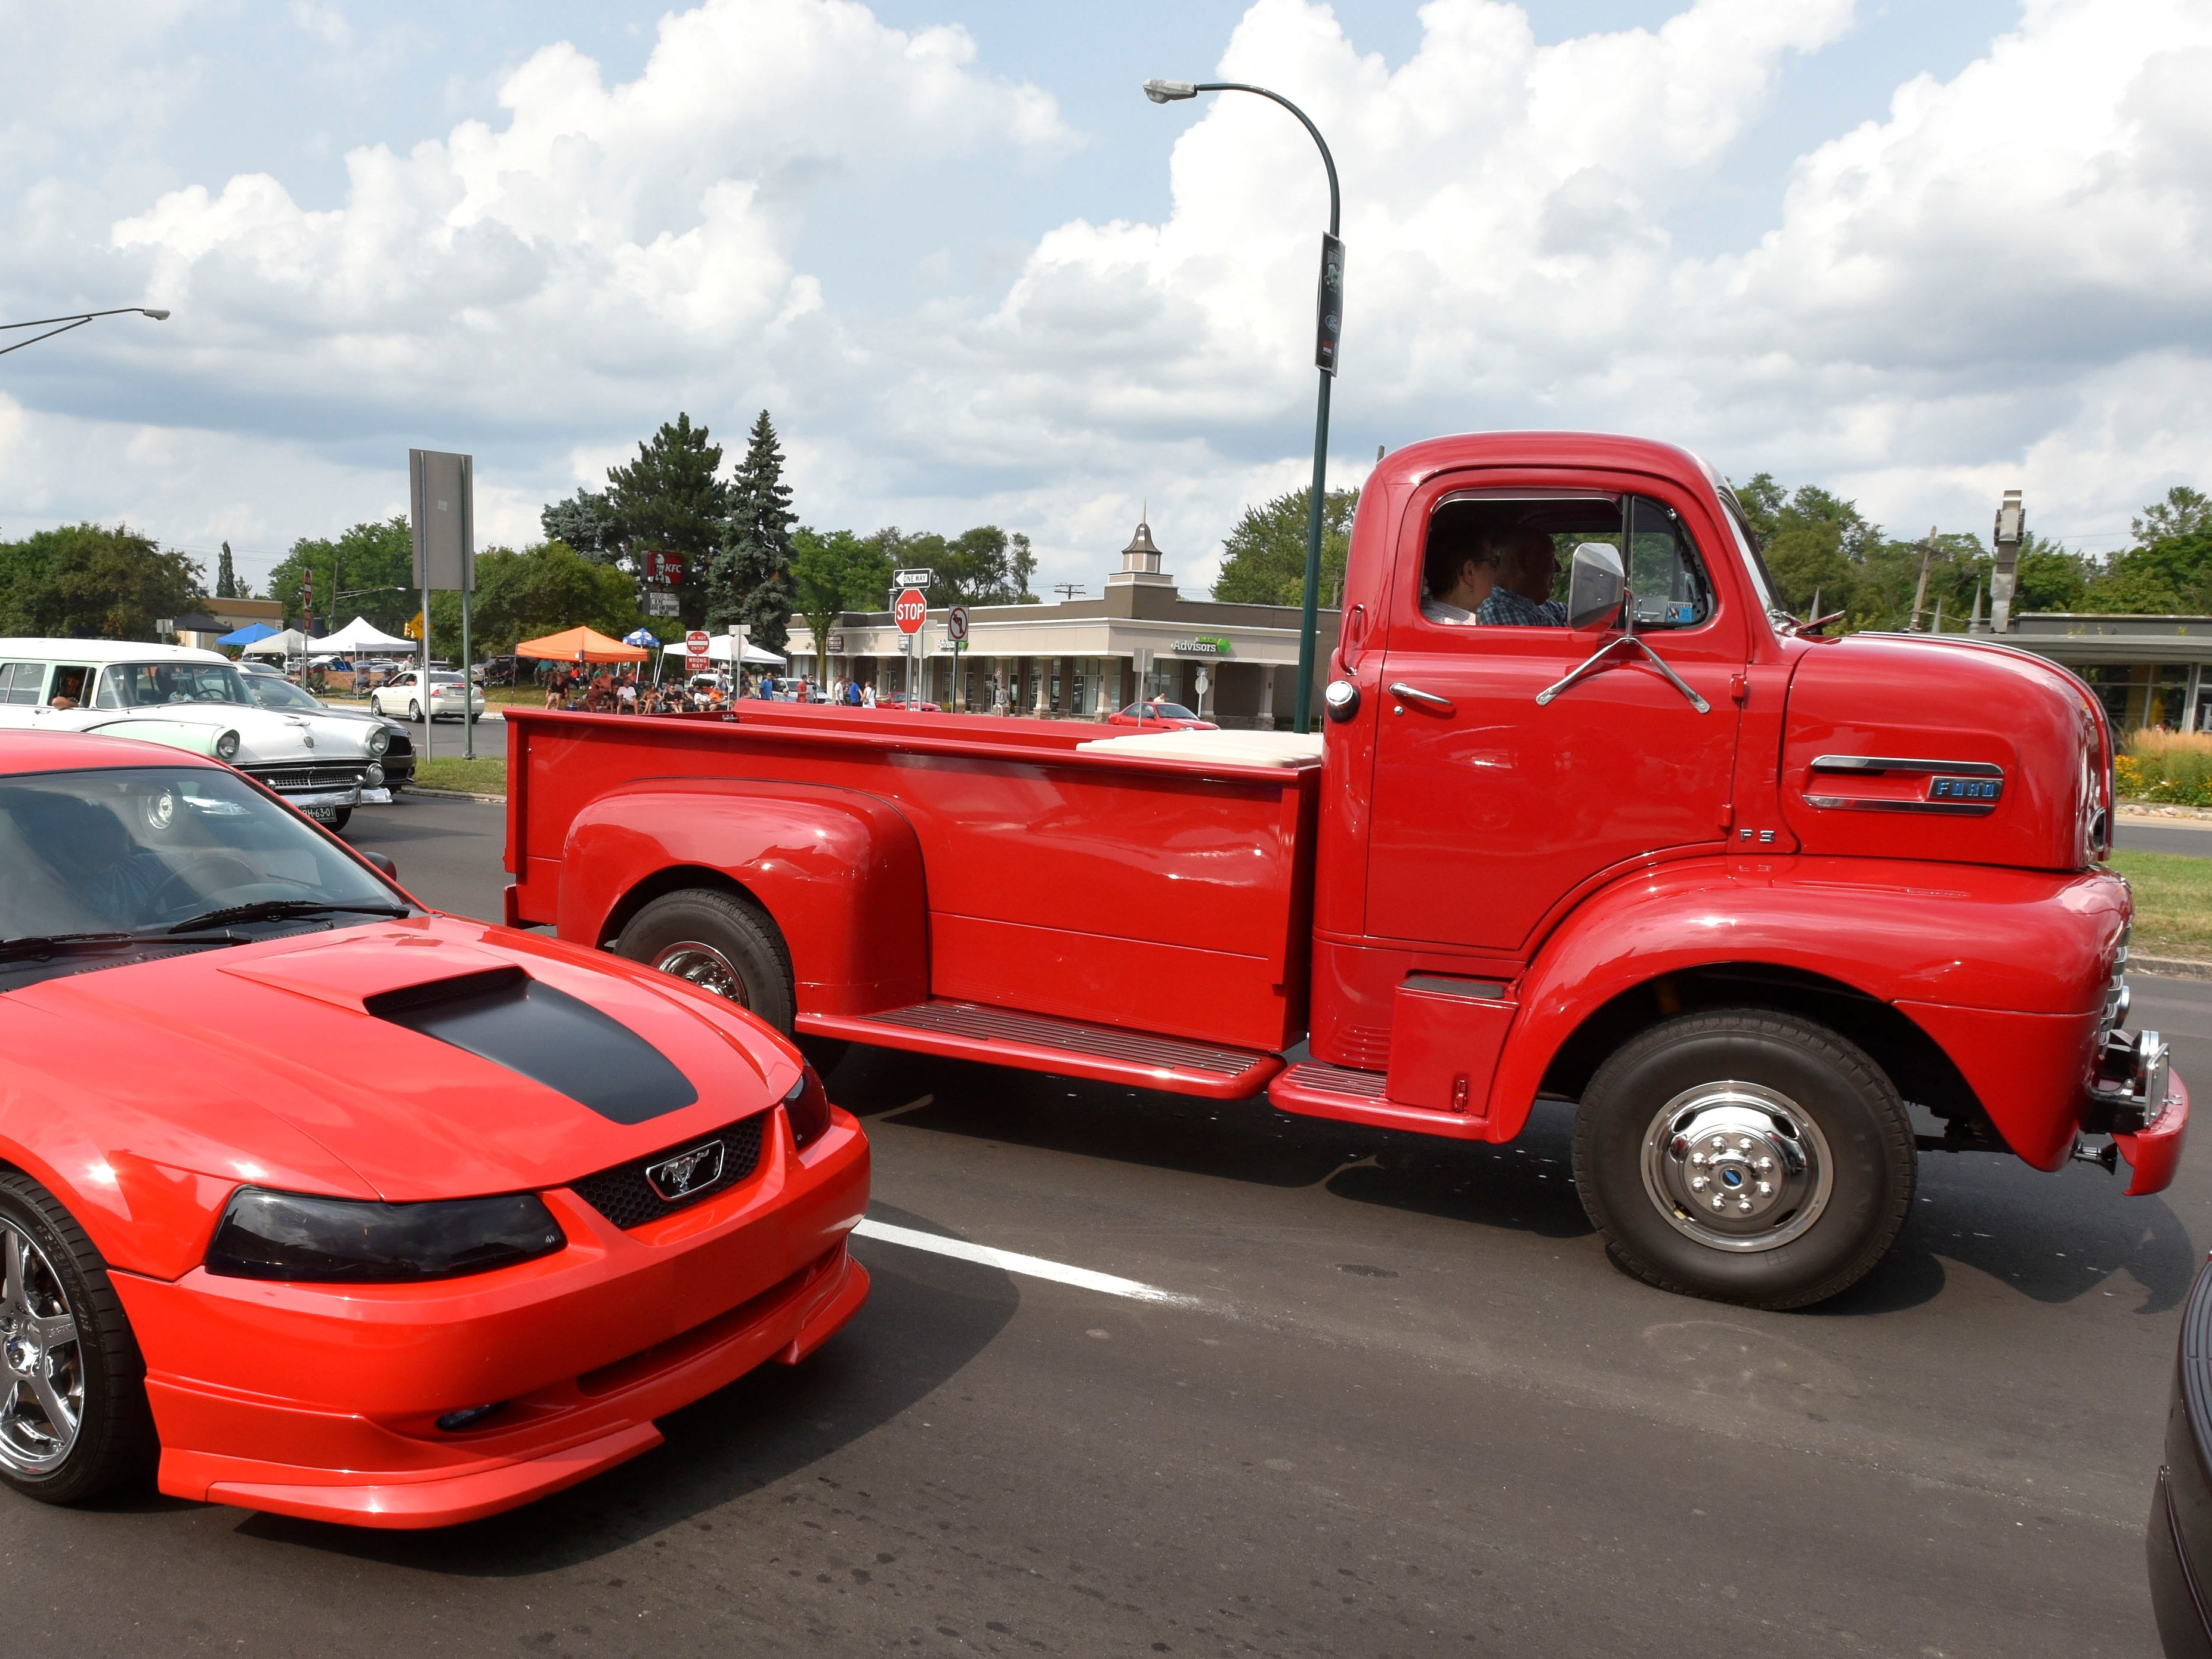 A Ford Mustang waits in traffic next to a customised 1940 Ford F3.